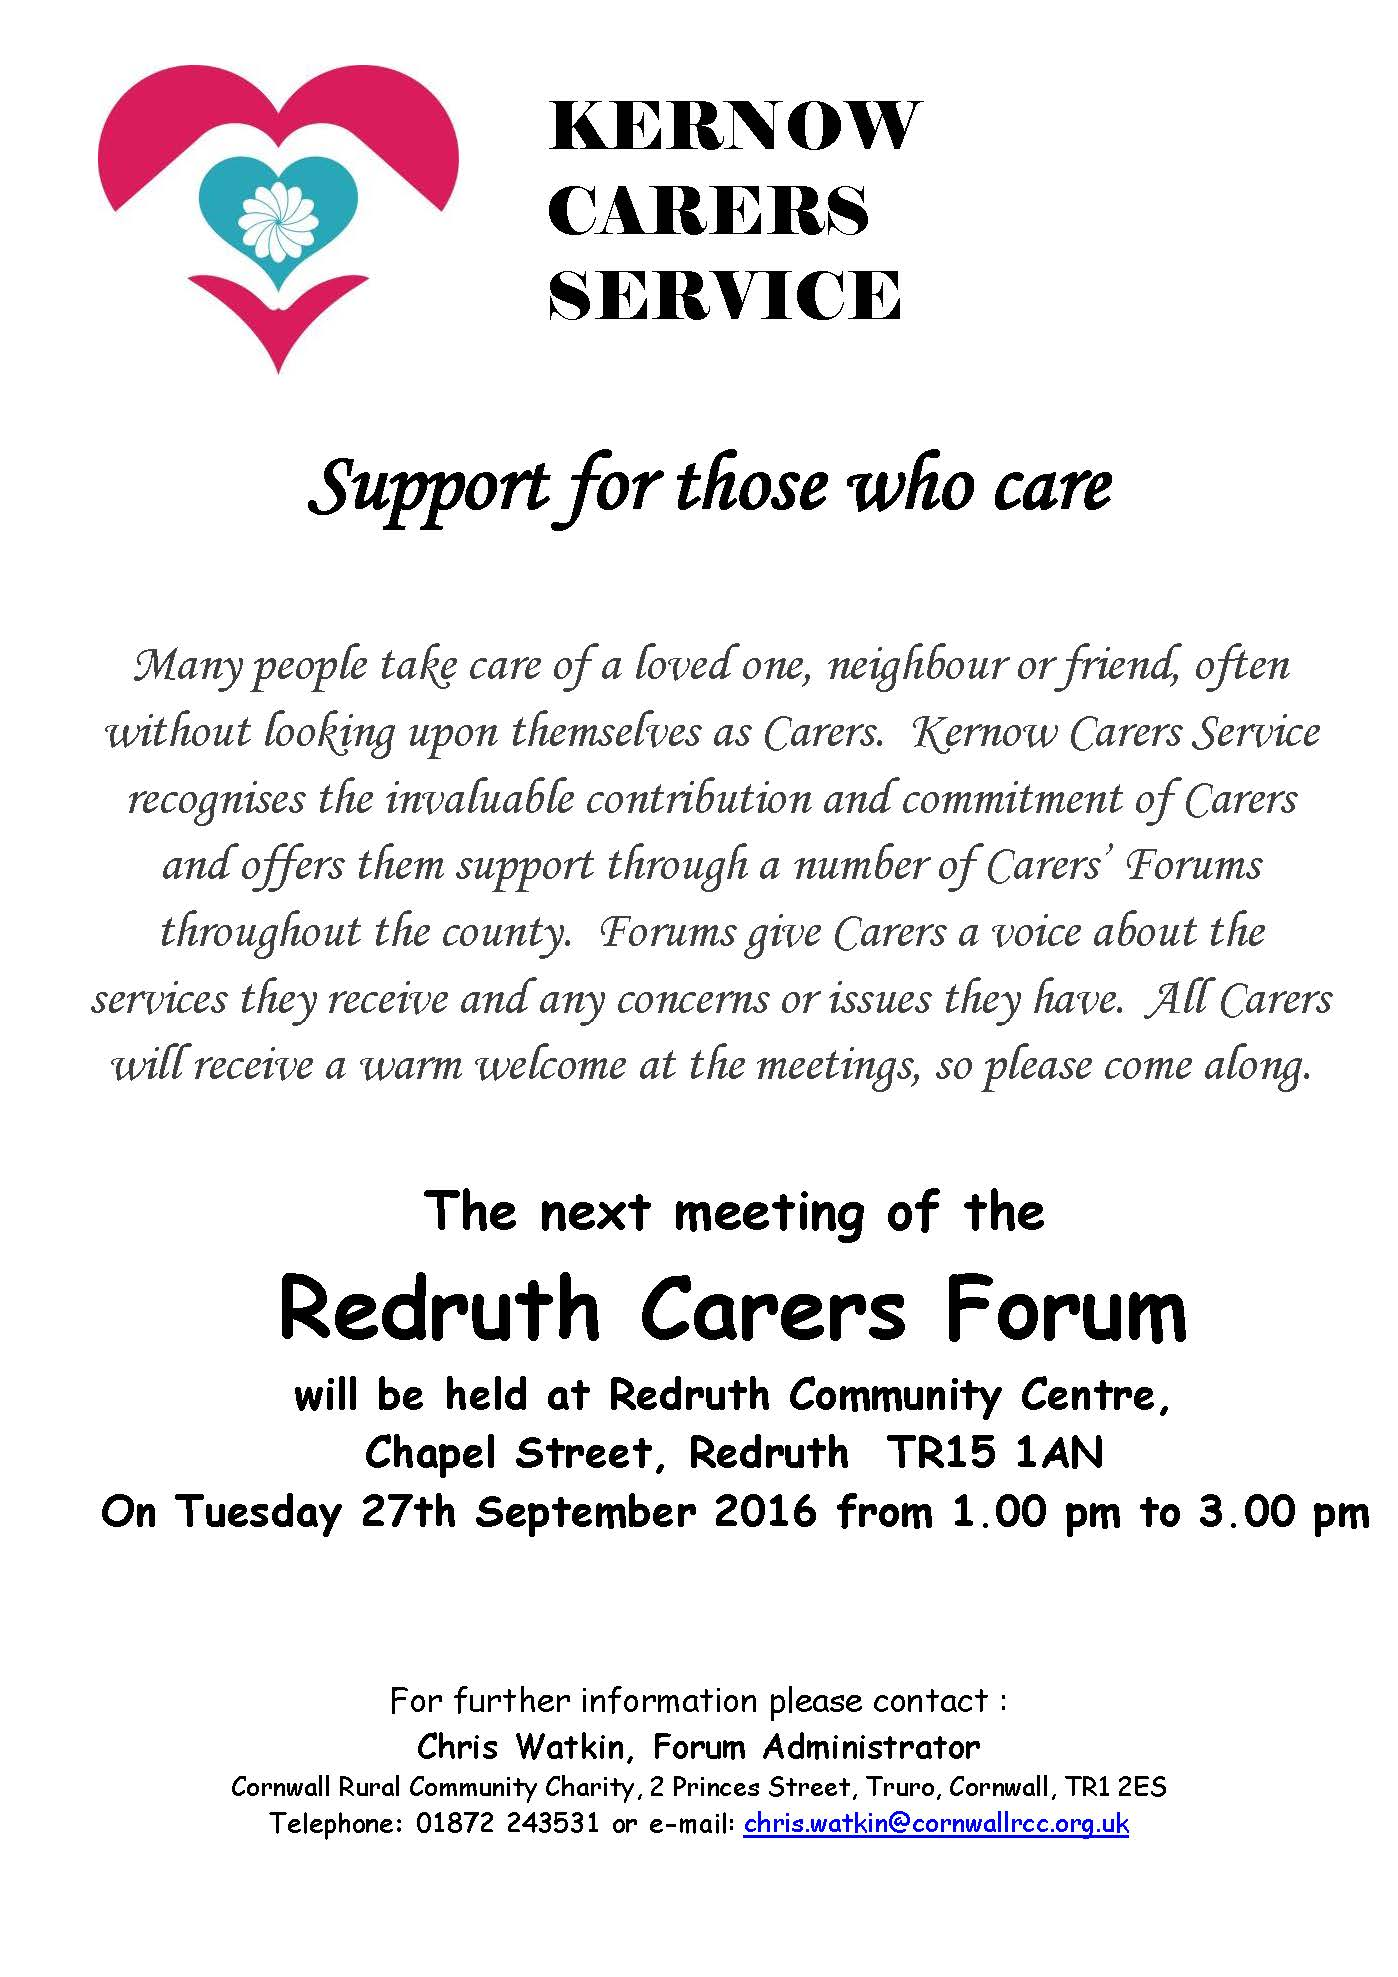 Redruth Carers Forum Meeting – Tues 27th September